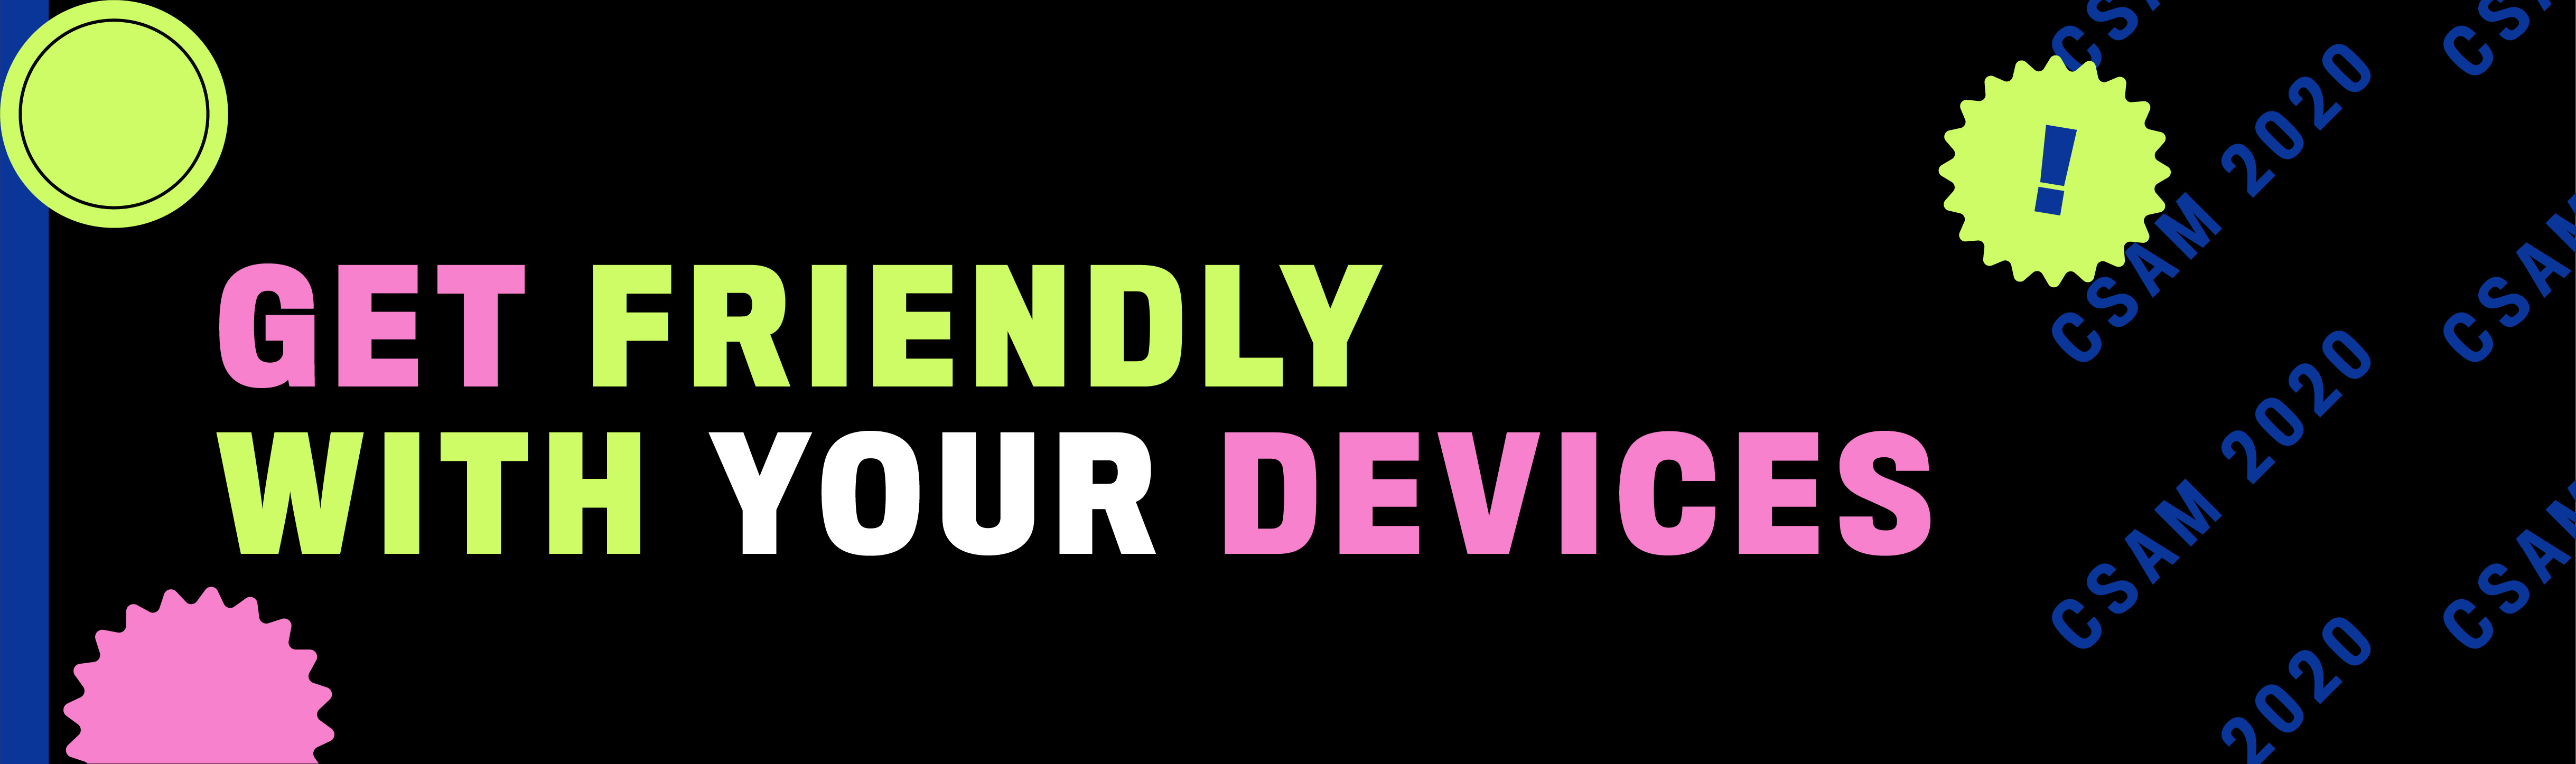 Get friendly with your devices